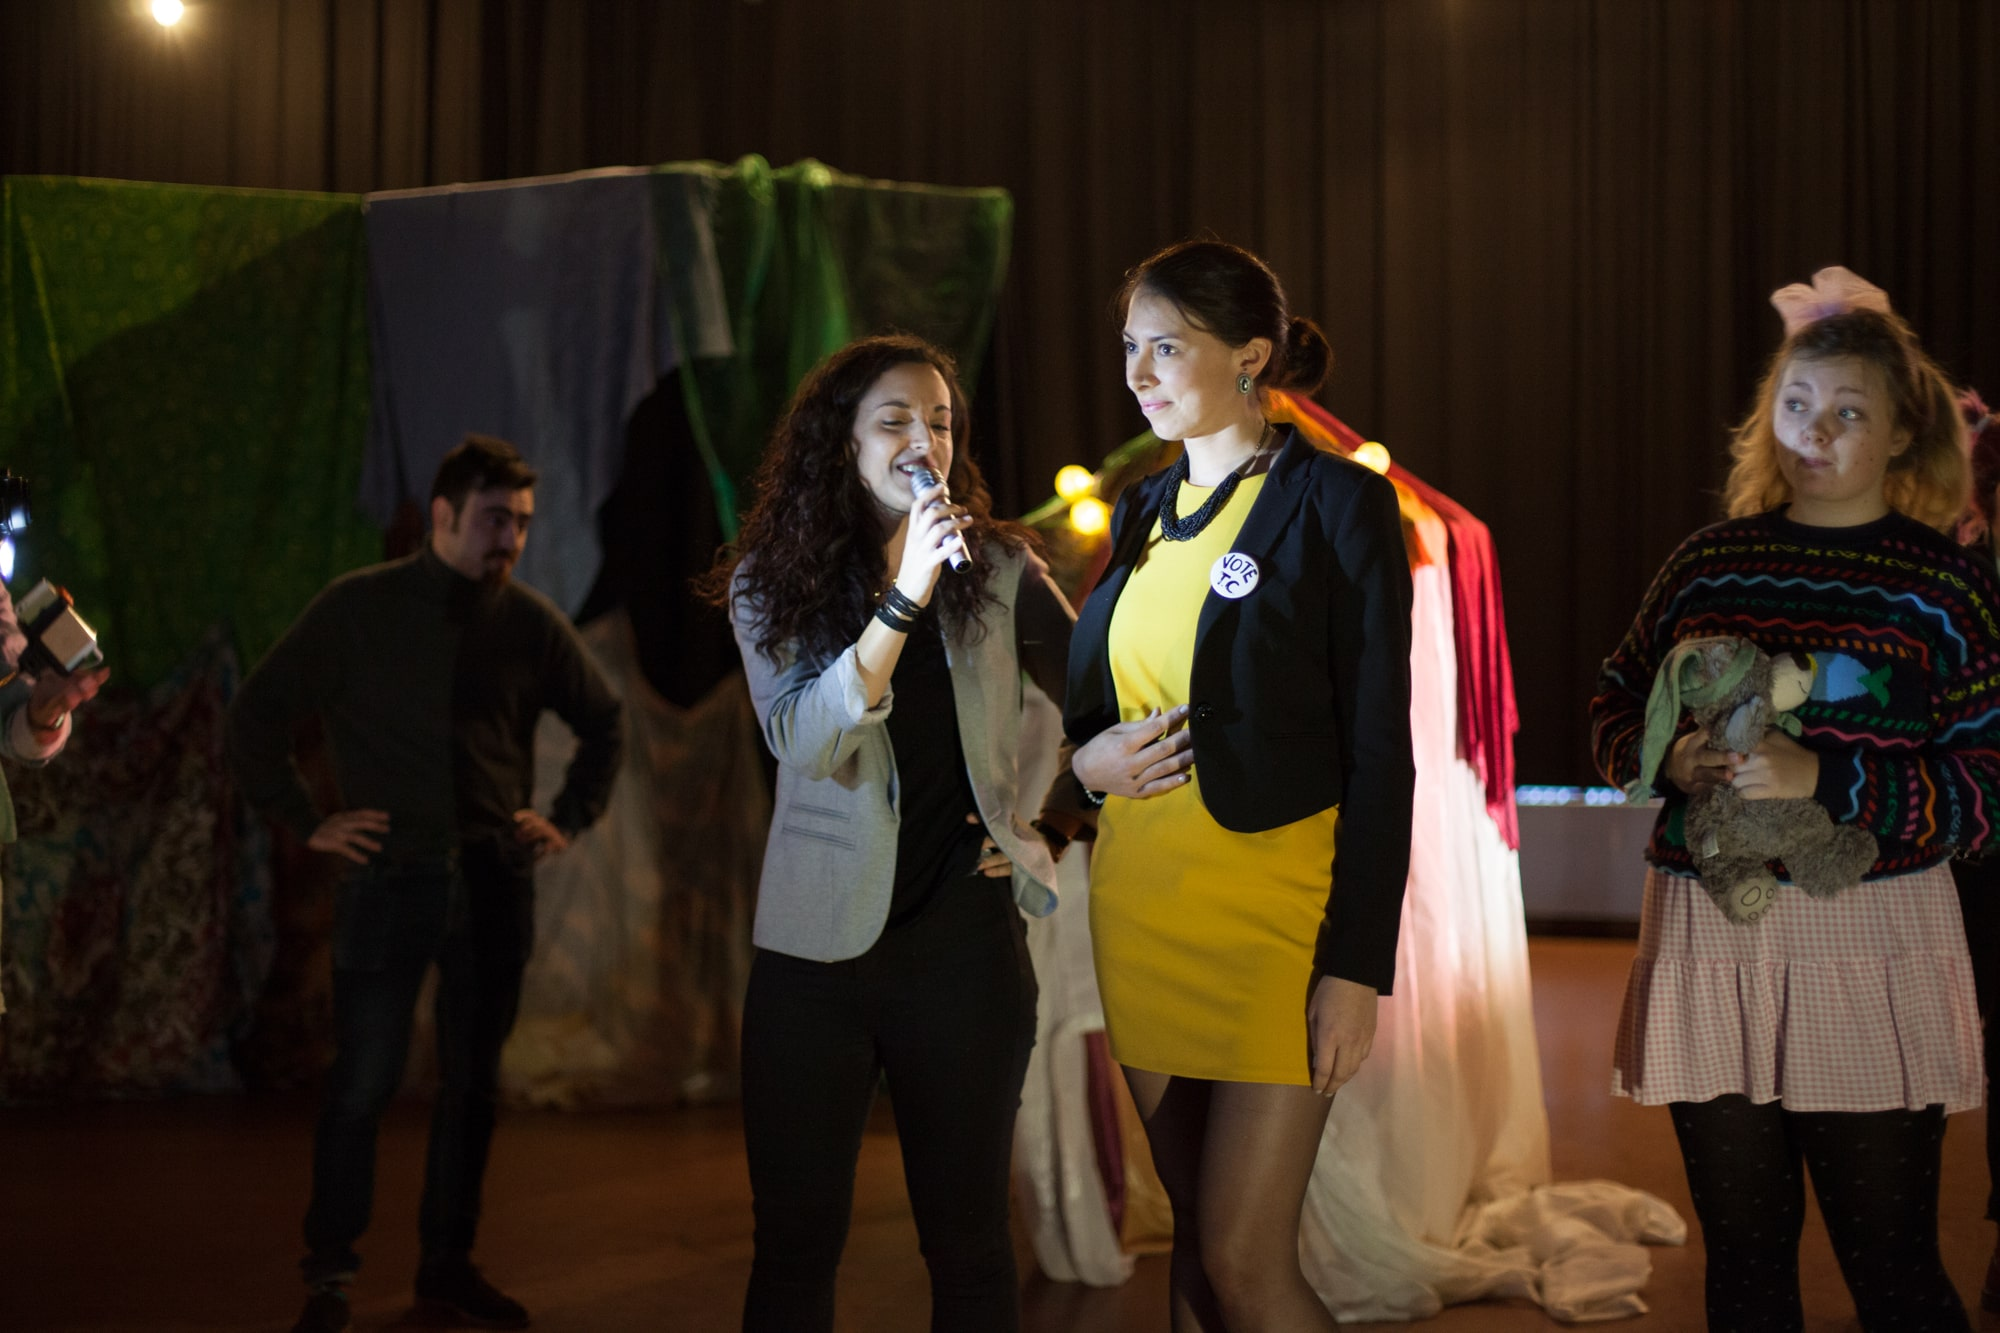 Act Attack theatre class actors performing, two women with dark hair wearing blazers. One is holding a mic interviewing the other